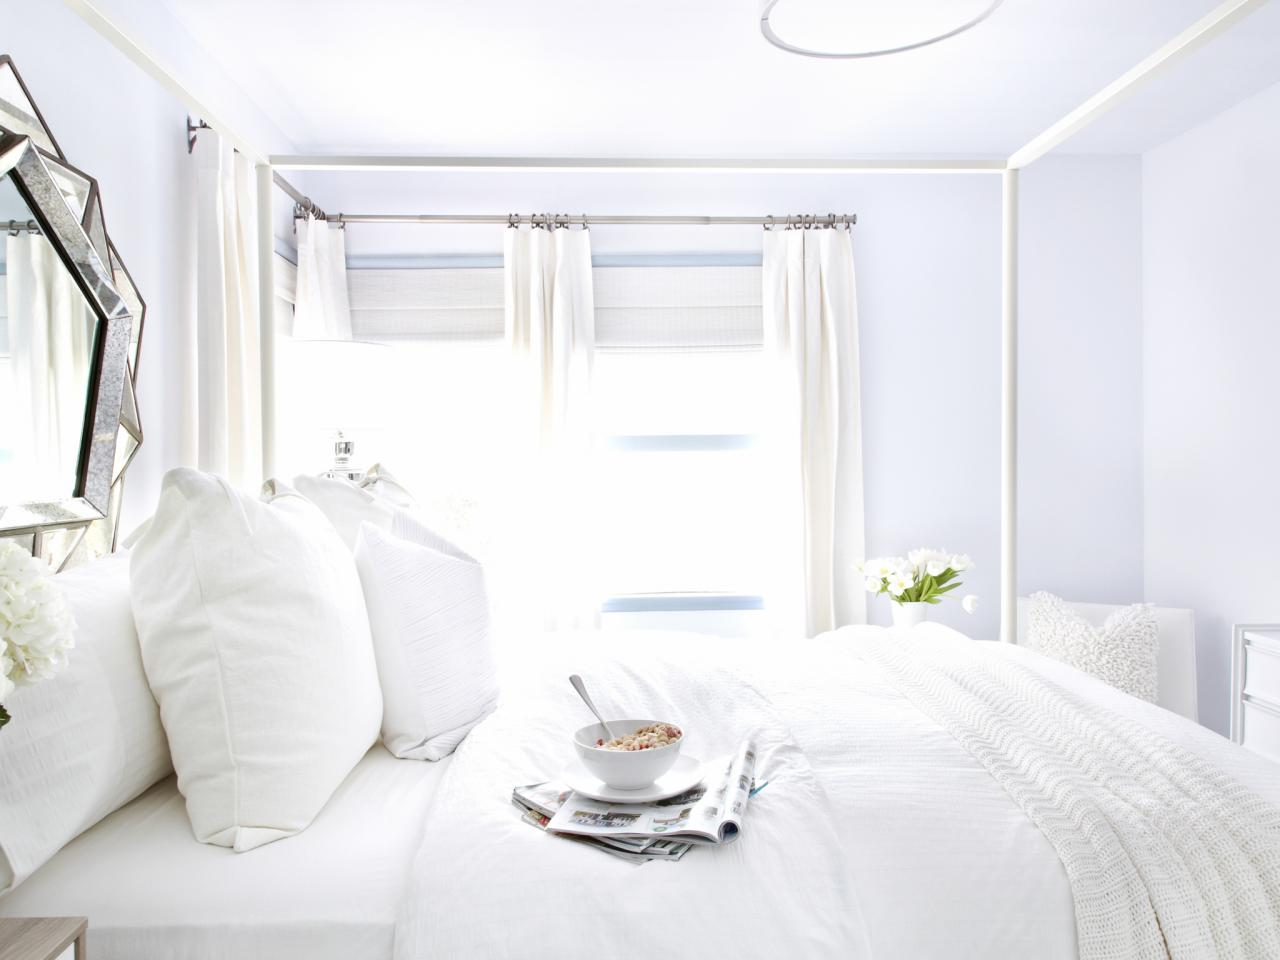 all white rooms 13 white living room photos |  Architecture overview interior all in white WGVTEJW